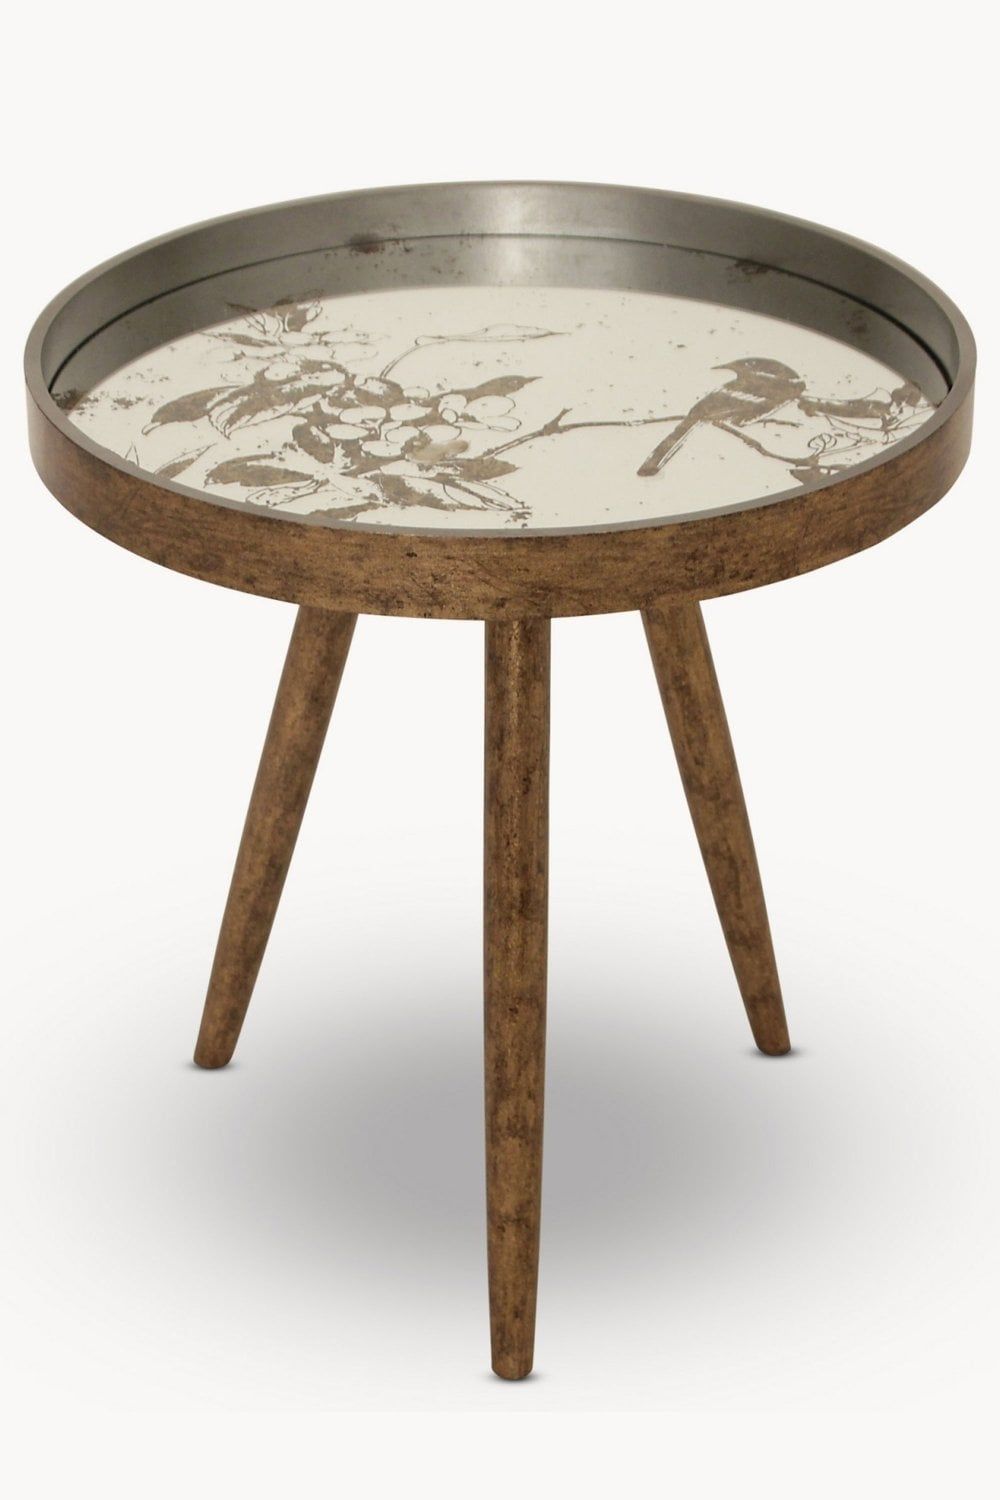 Awe Inspiring The Home Collection Waltham Bird Pattern Side Table Uwap Interior Chair Design Uwaporg